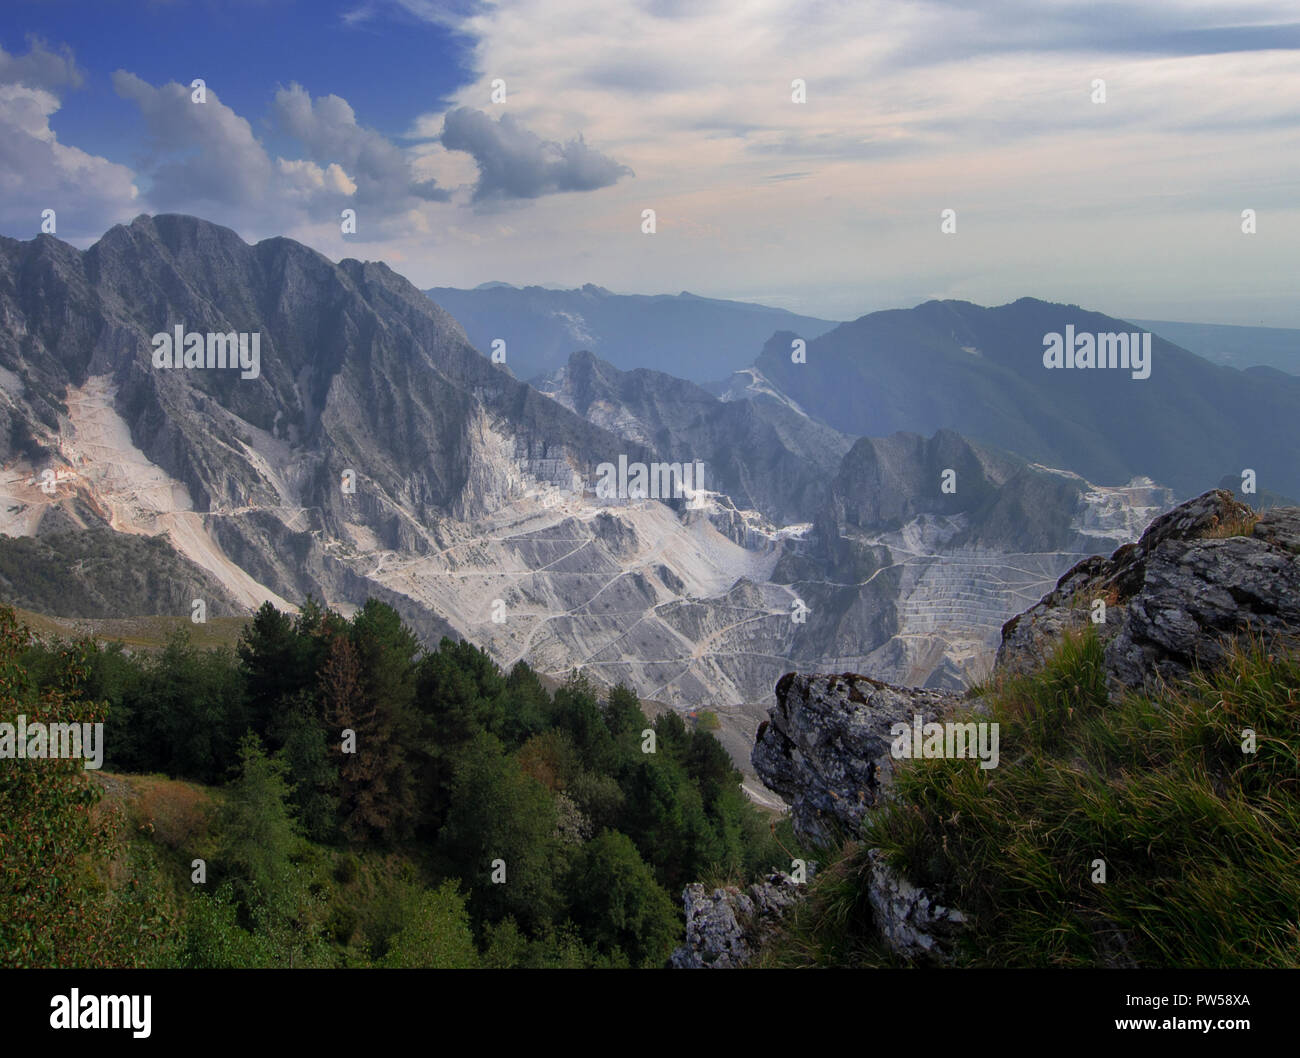 Stunning wide view over the white marble quarries seen from Campo Cecina, Massa Carrara, Italy. Autumn, fall. Beautiful landscape but also environmental issues. - Stock Image